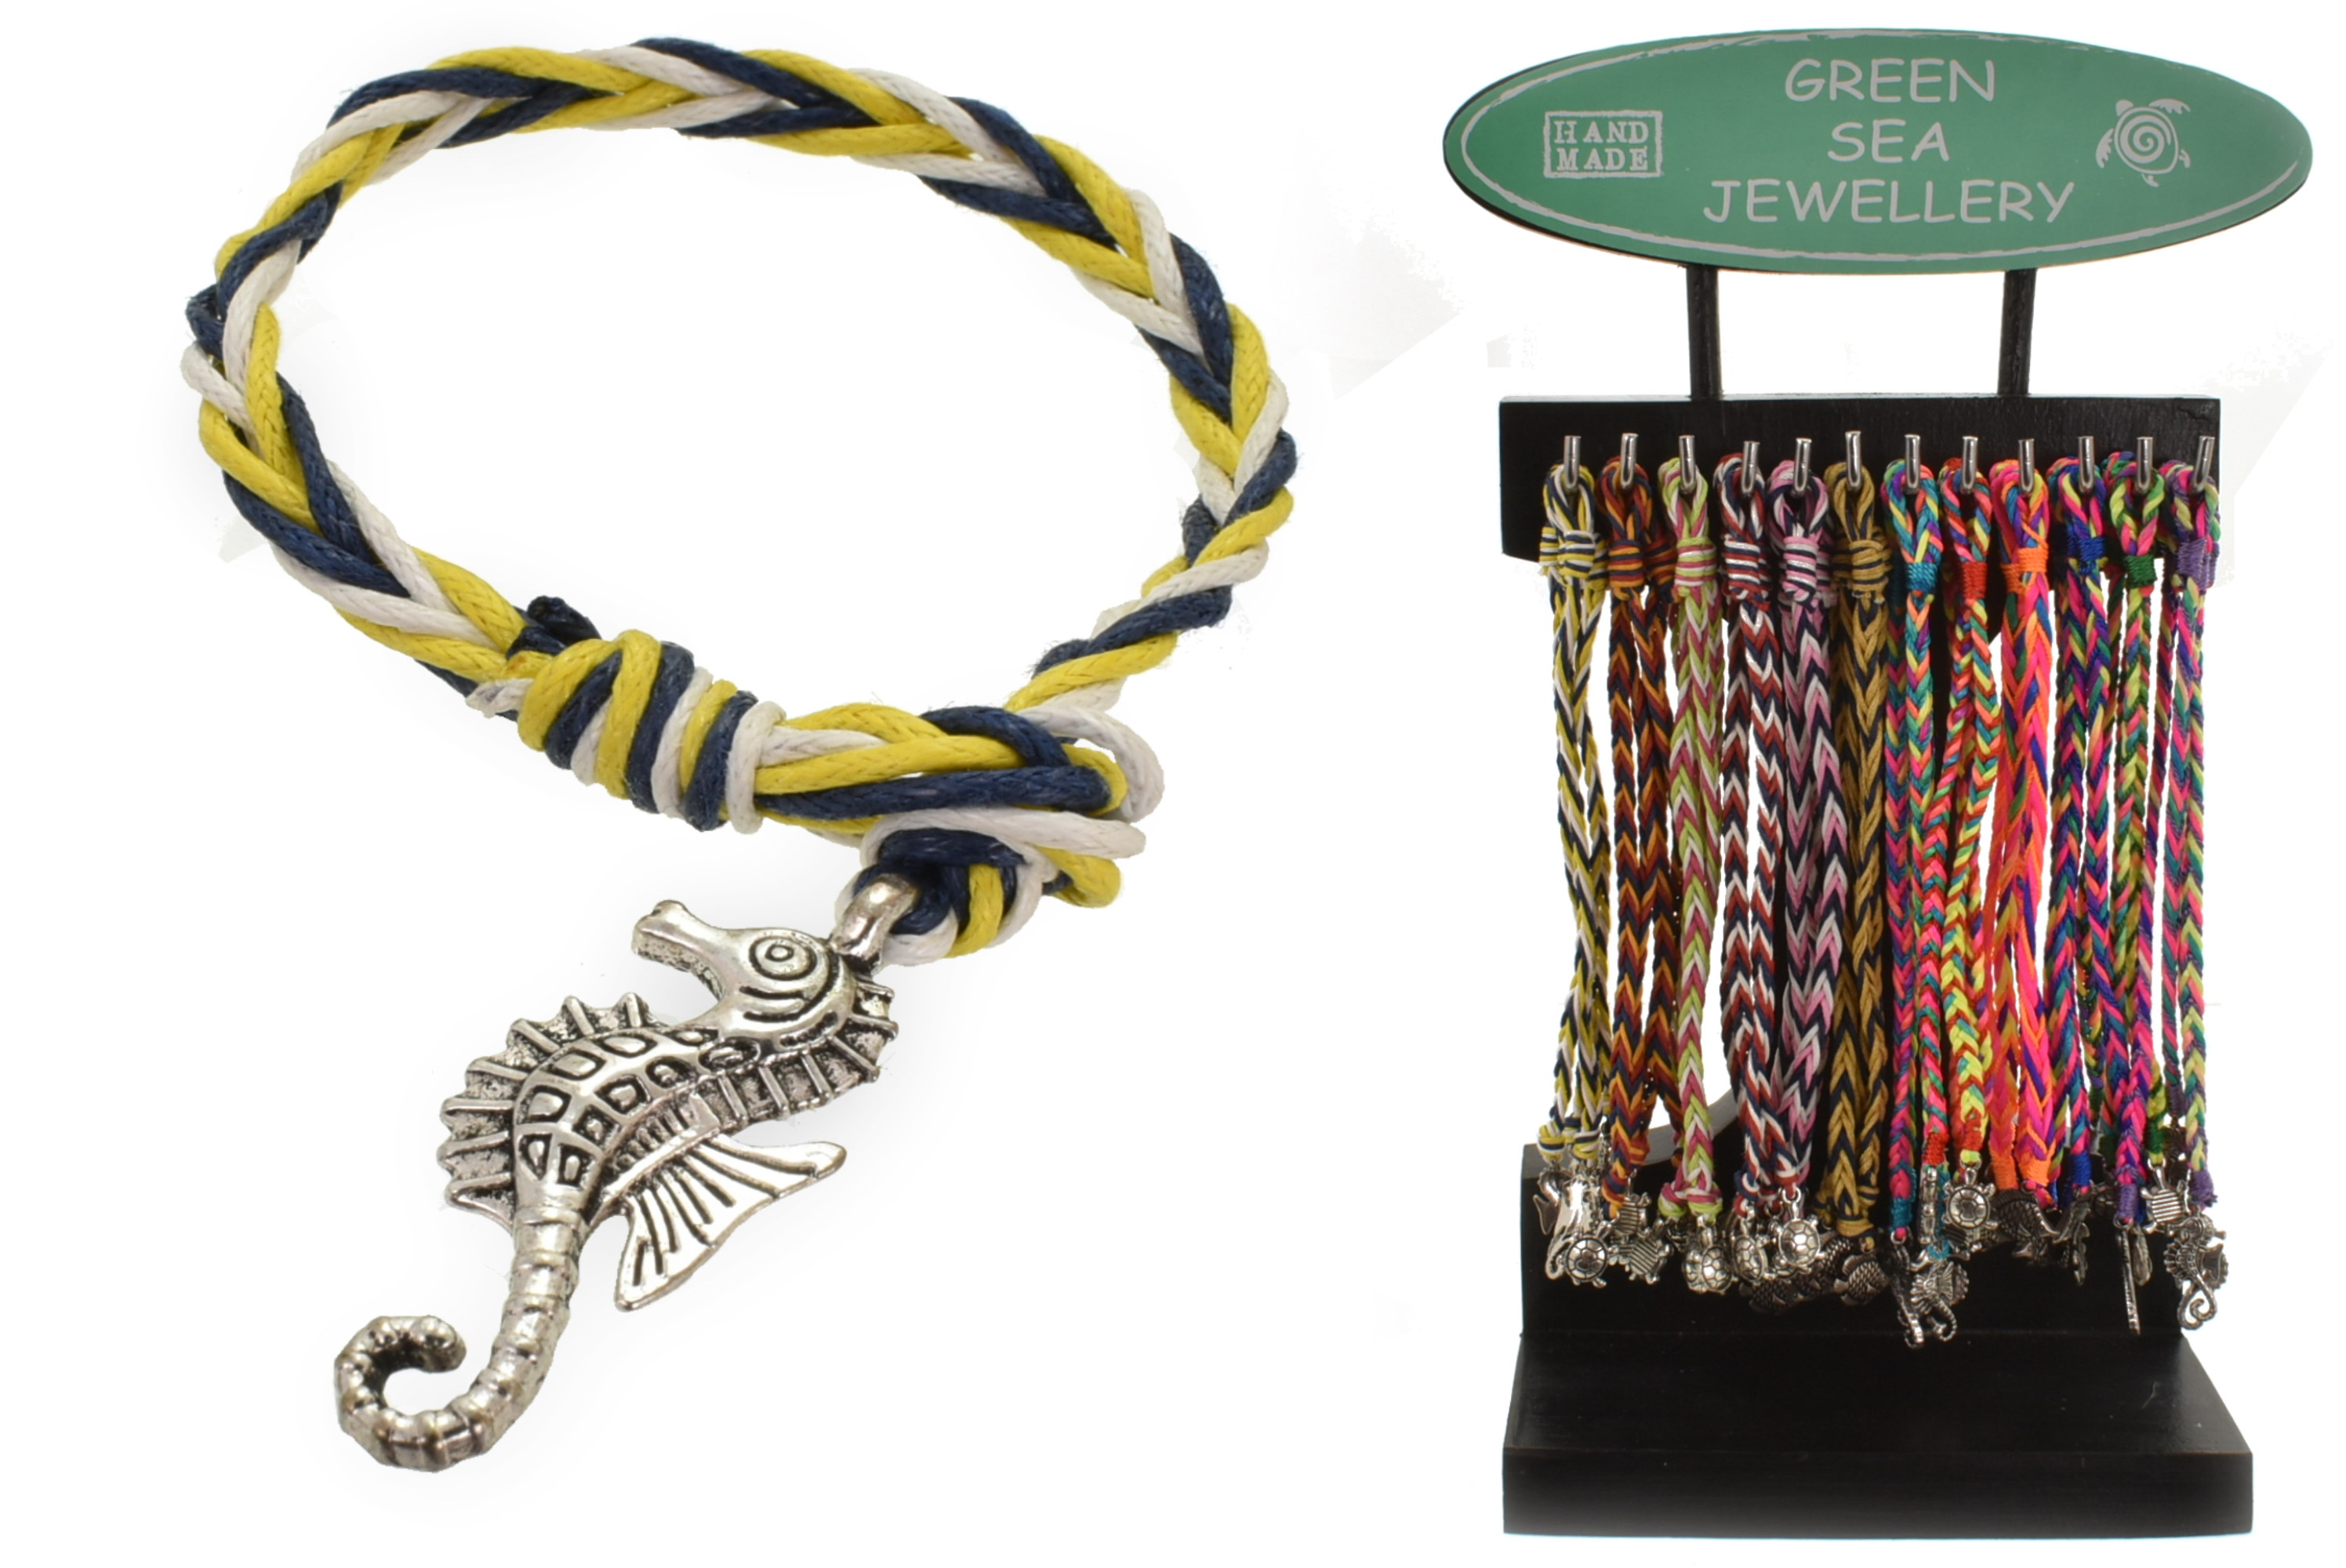 Cotton Lanyard Rope Sea Life Bracelets On Display Stand